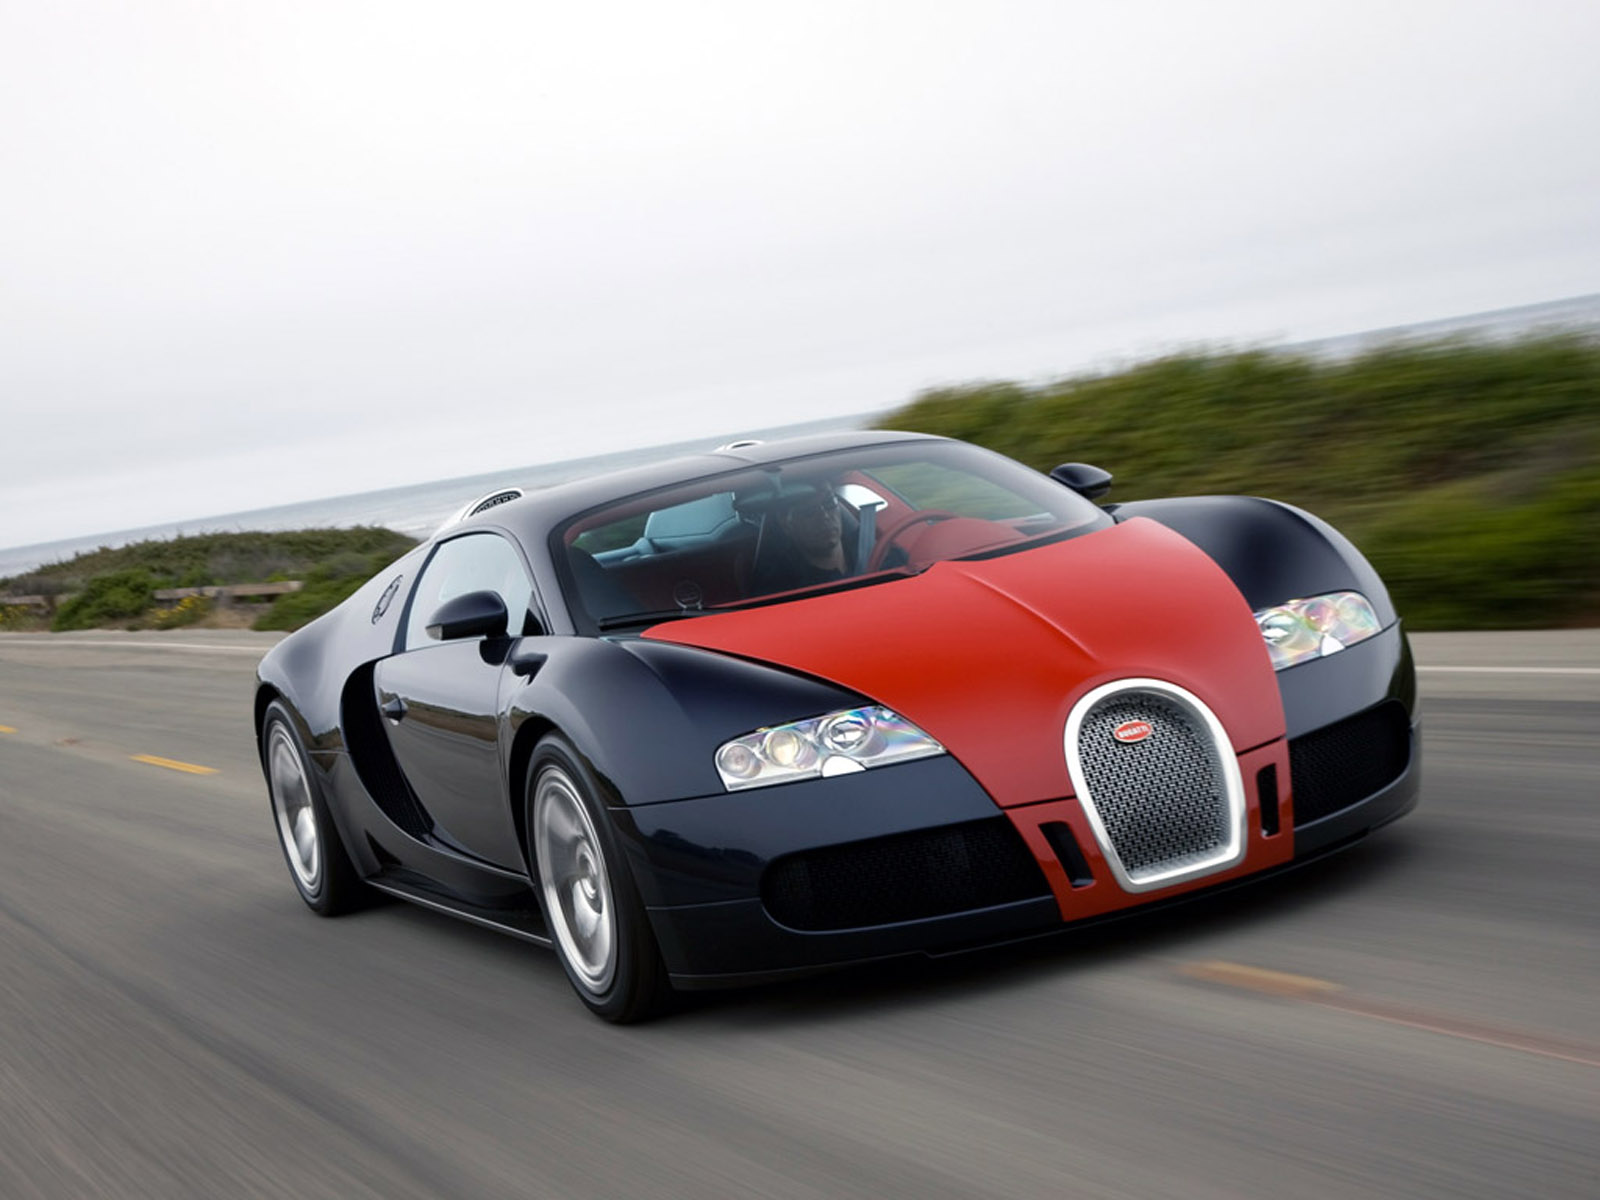 hd cars wallpapers bugatti veyron the fastest car ever. Black Bedroom Furniture Sets. Home Design Ideas